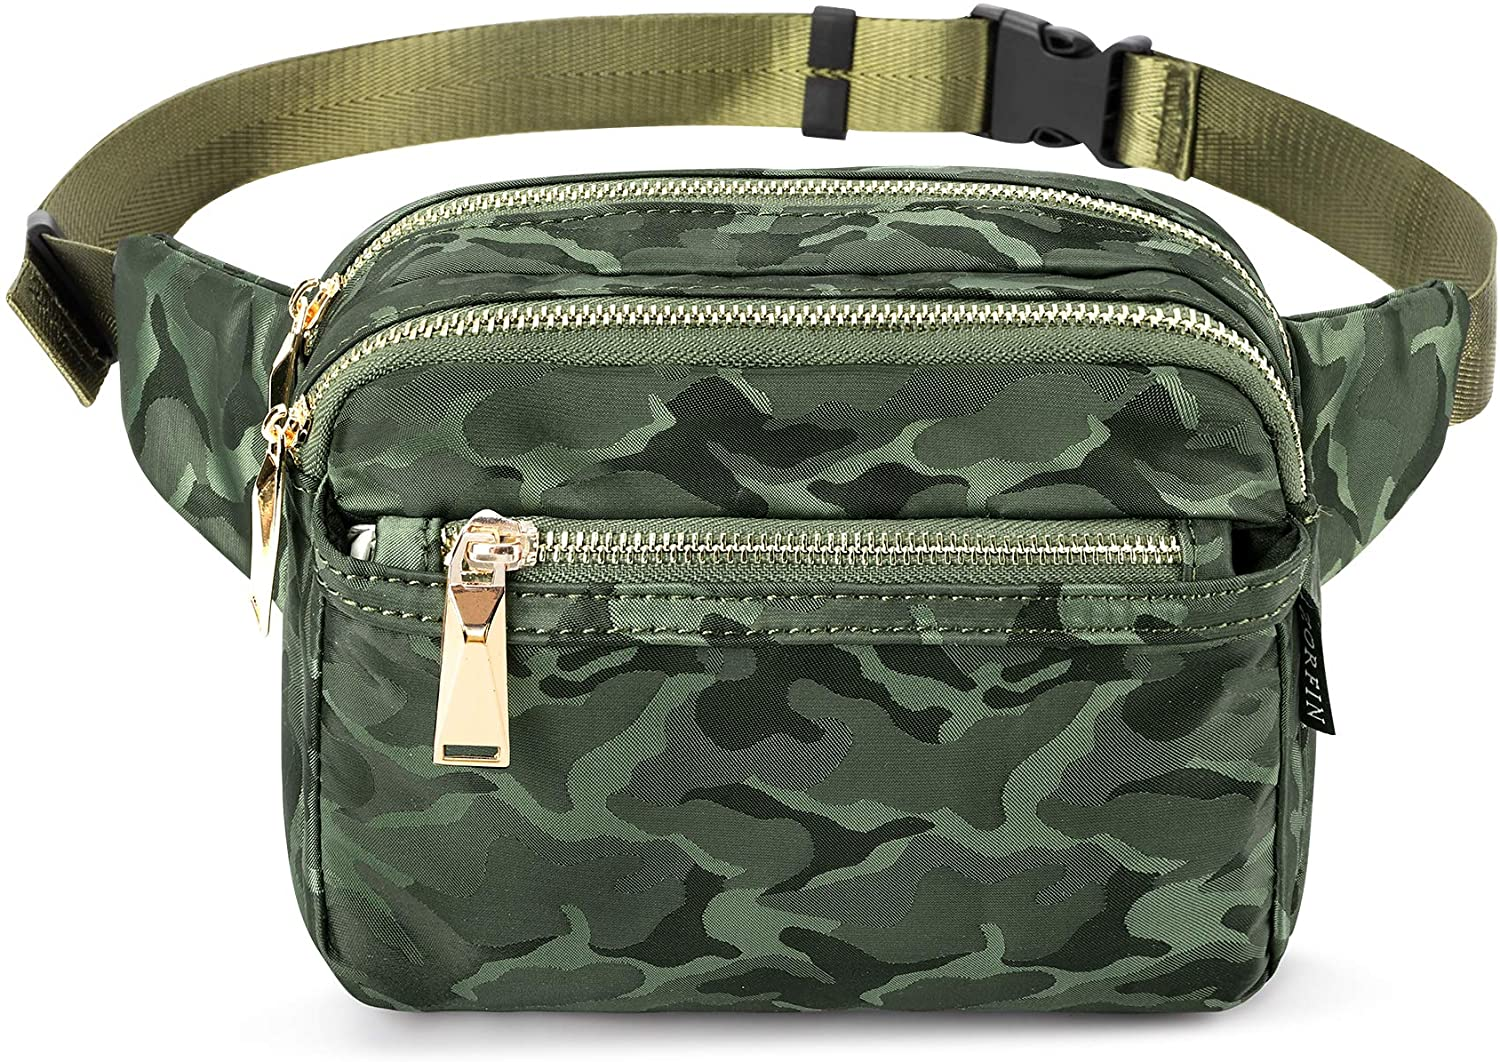 ZORFIN Fanny Pack for Women and Men, Multiple Pockets Waist Pack Belt Bags for Travelling Hiking Cycling (Camo Green)